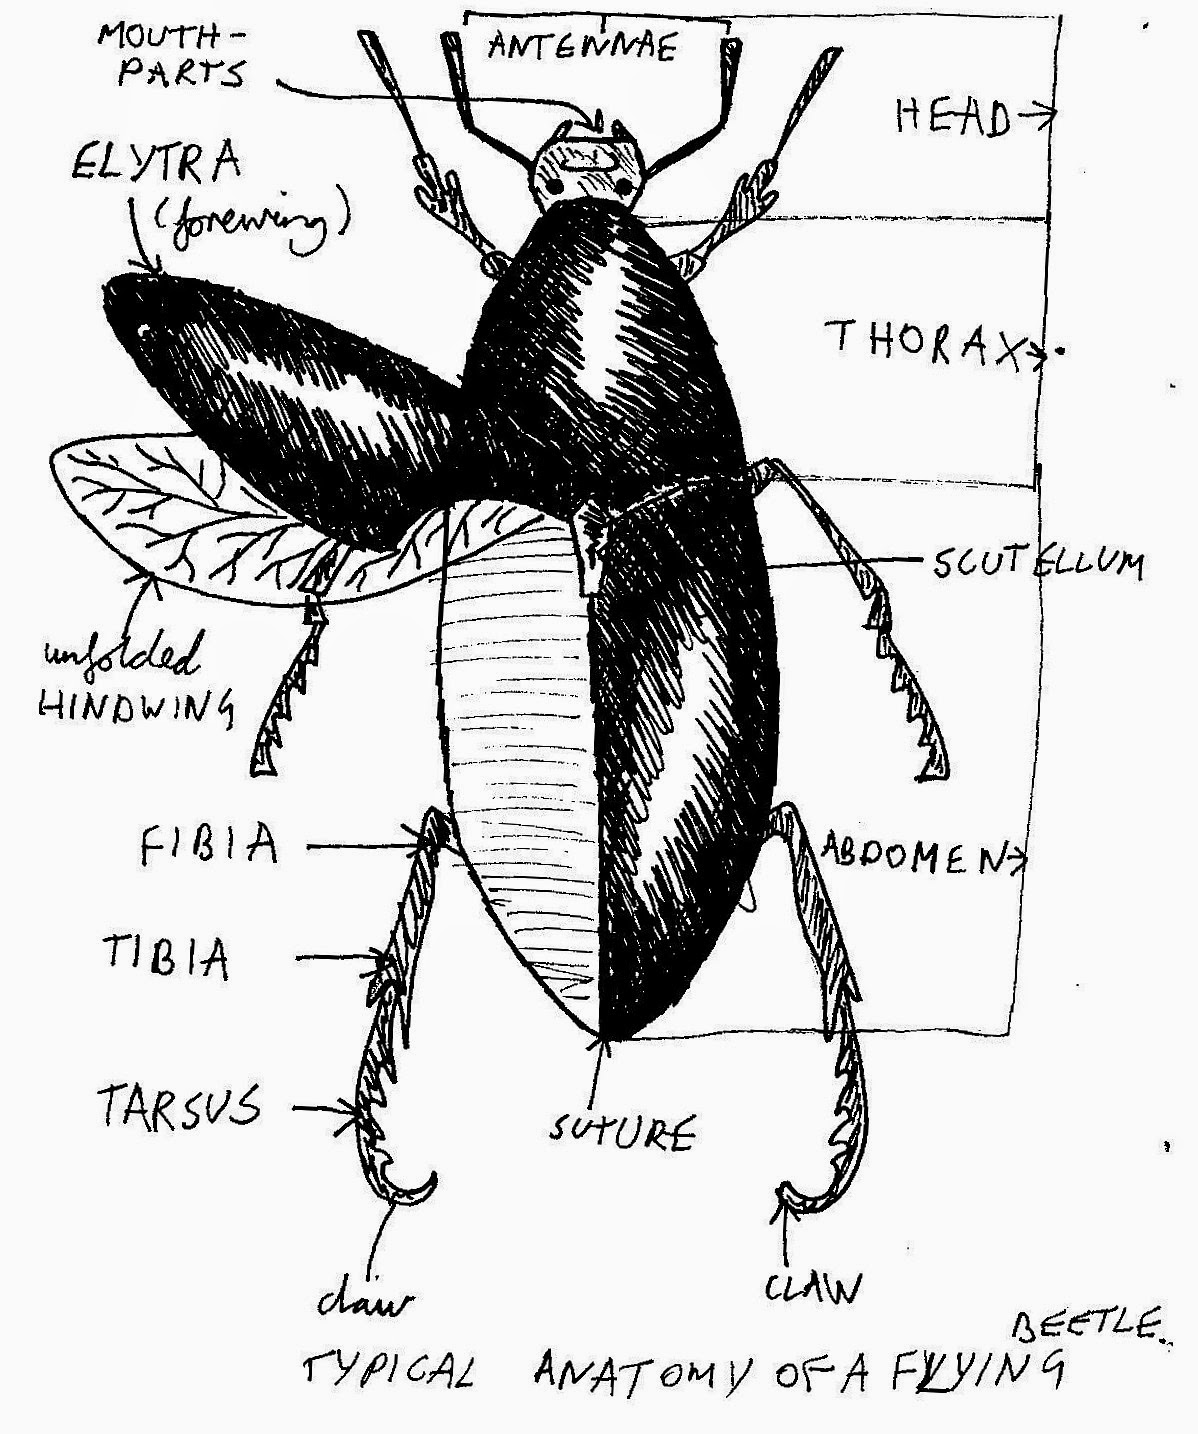 Zoology Essays Notes On Objects Longhorn Beetle And Ammonite